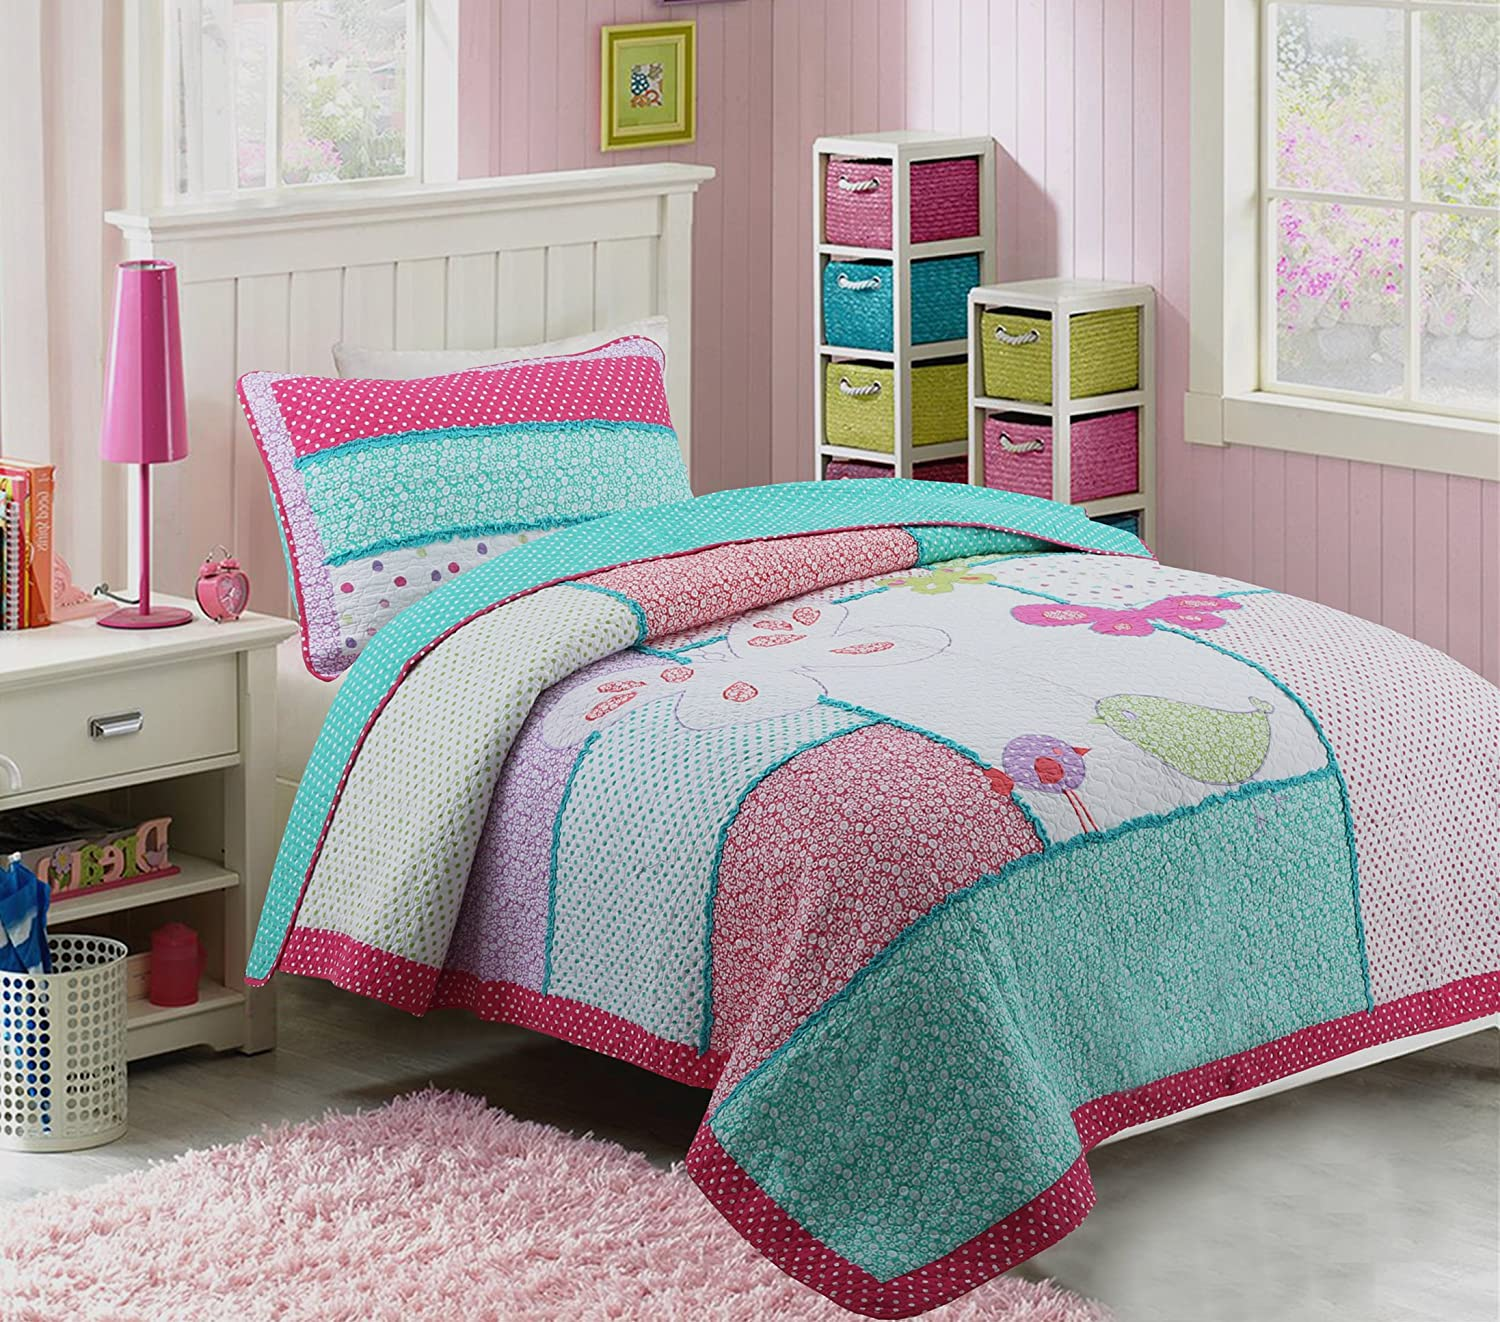 HNNSI 100% Cotton 2PCS Quilt Bedspread Set Twin Size for Kids Girls, Teen Girls Cute Patchwork Comforter Bedding sets